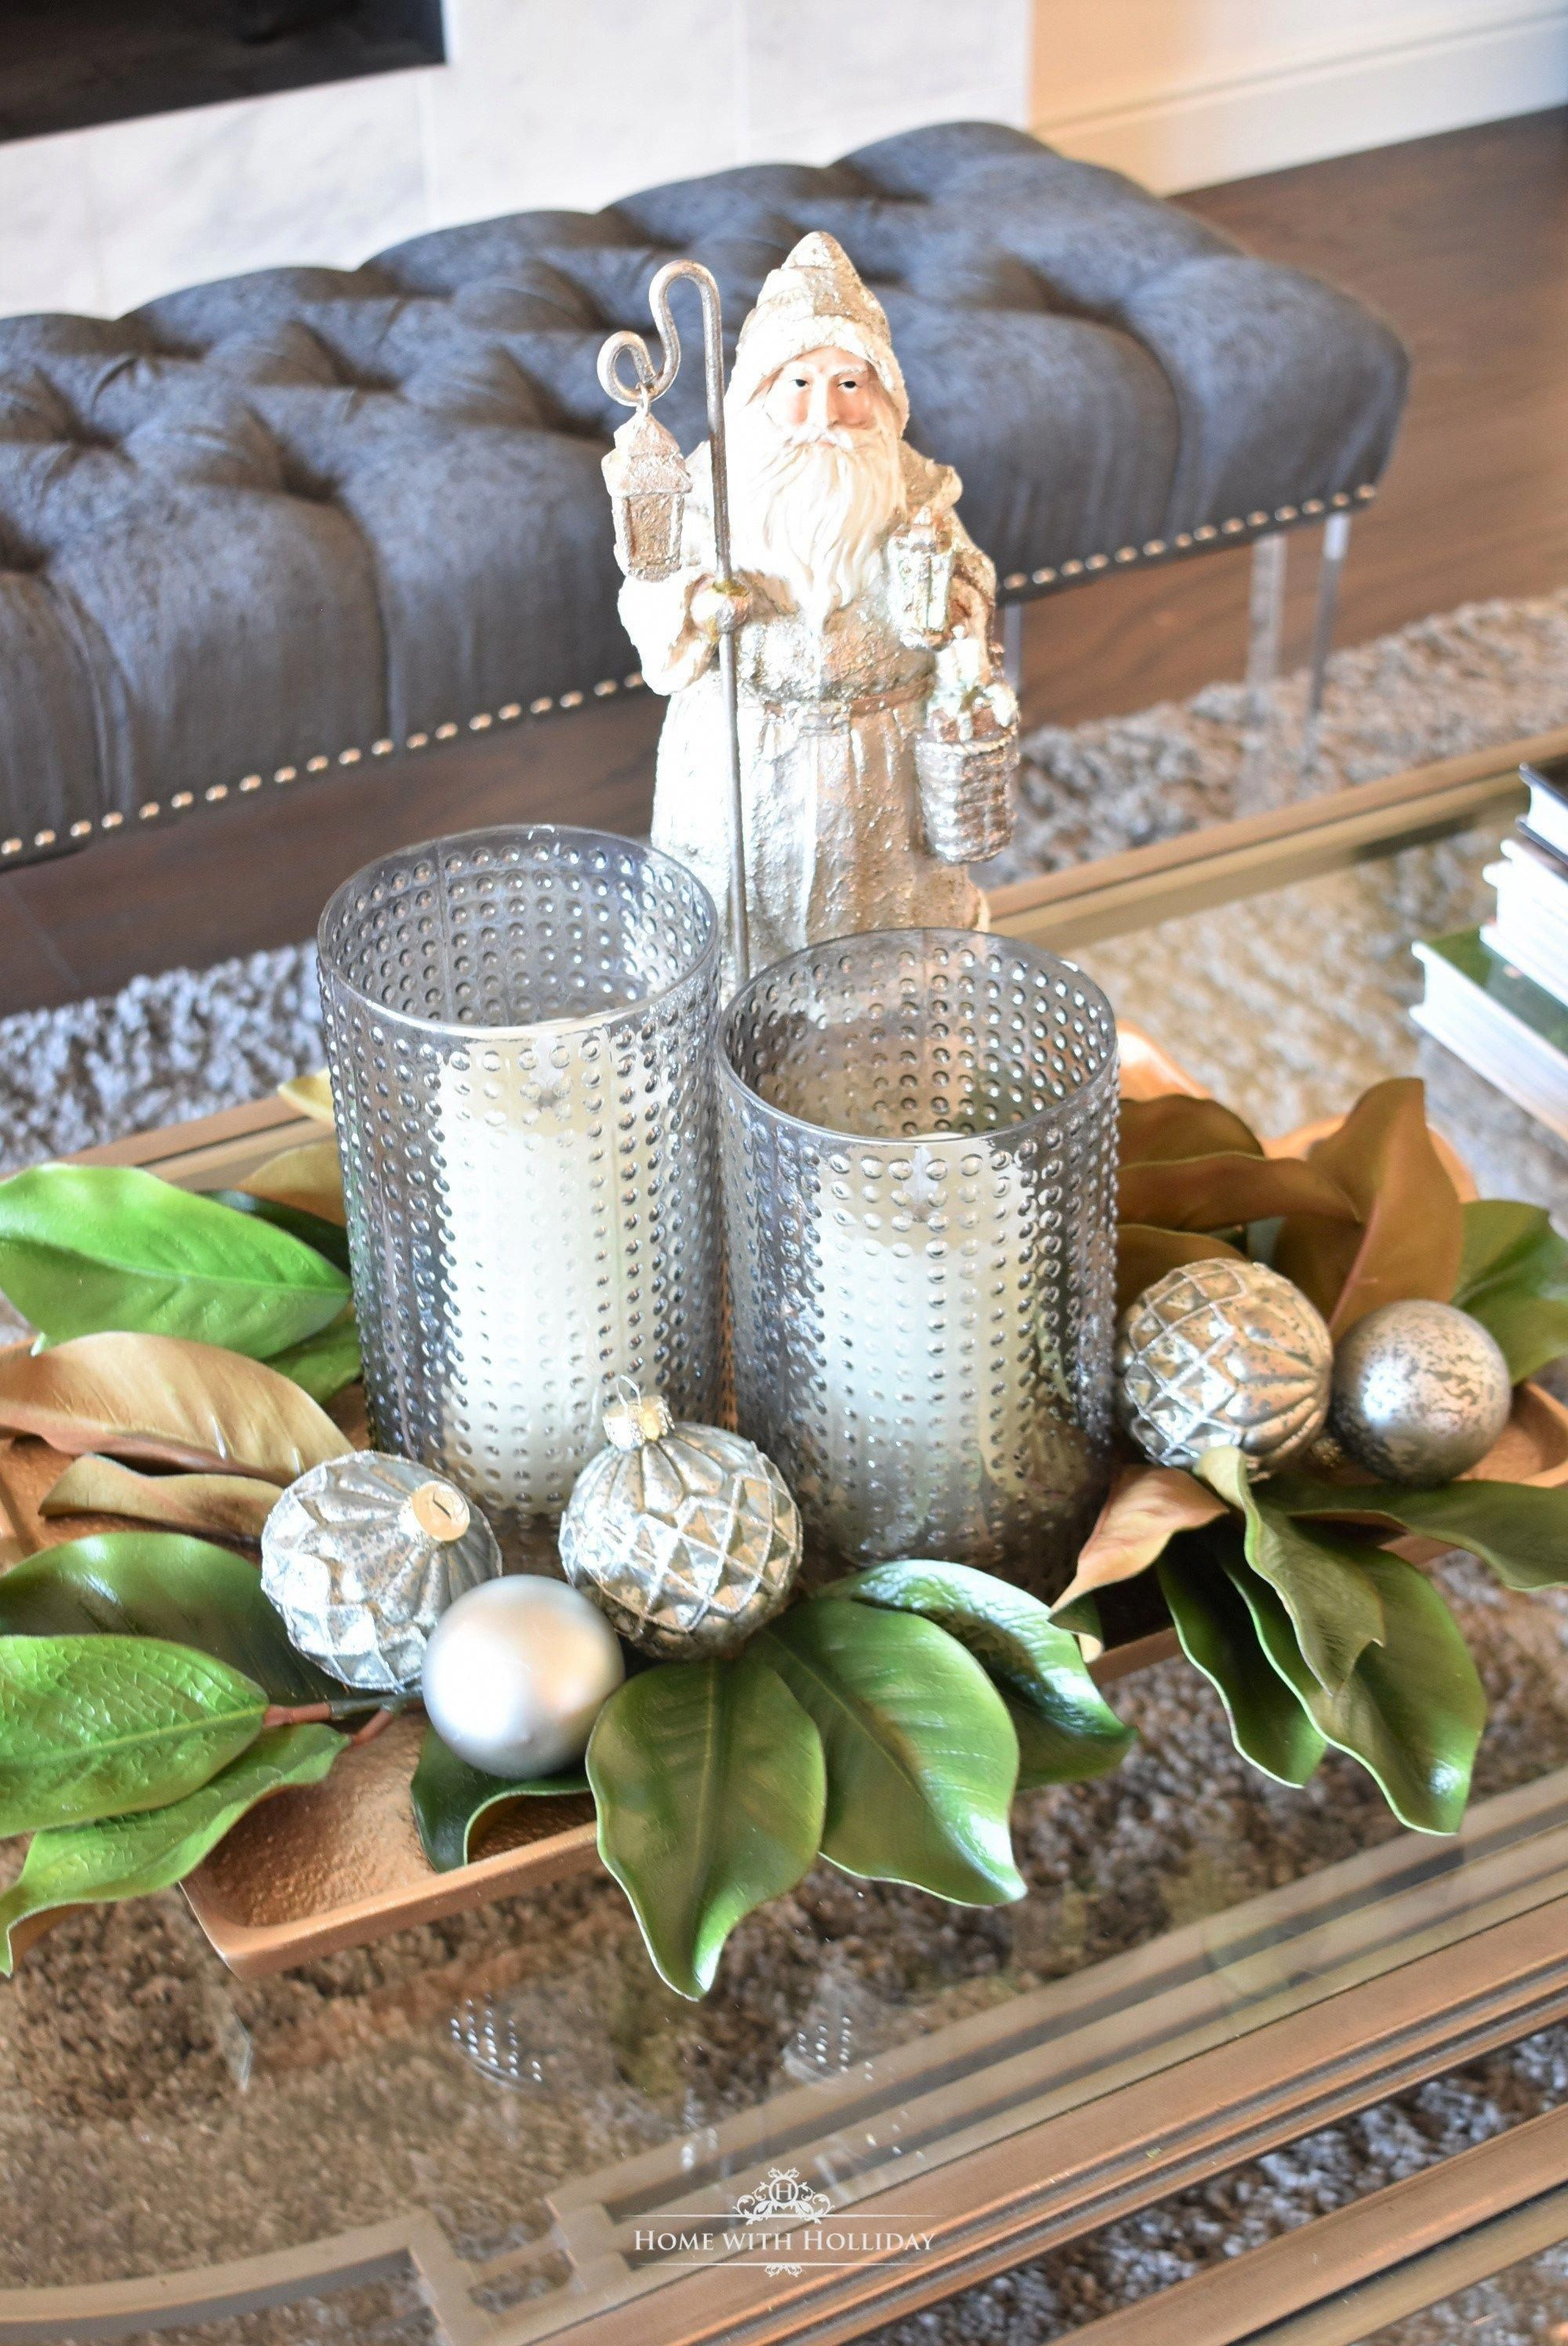 Our Christmas Home Tour - Home with Holliday  #christmasdecor #holidaydecor #xmasdecor #vintagechristmas